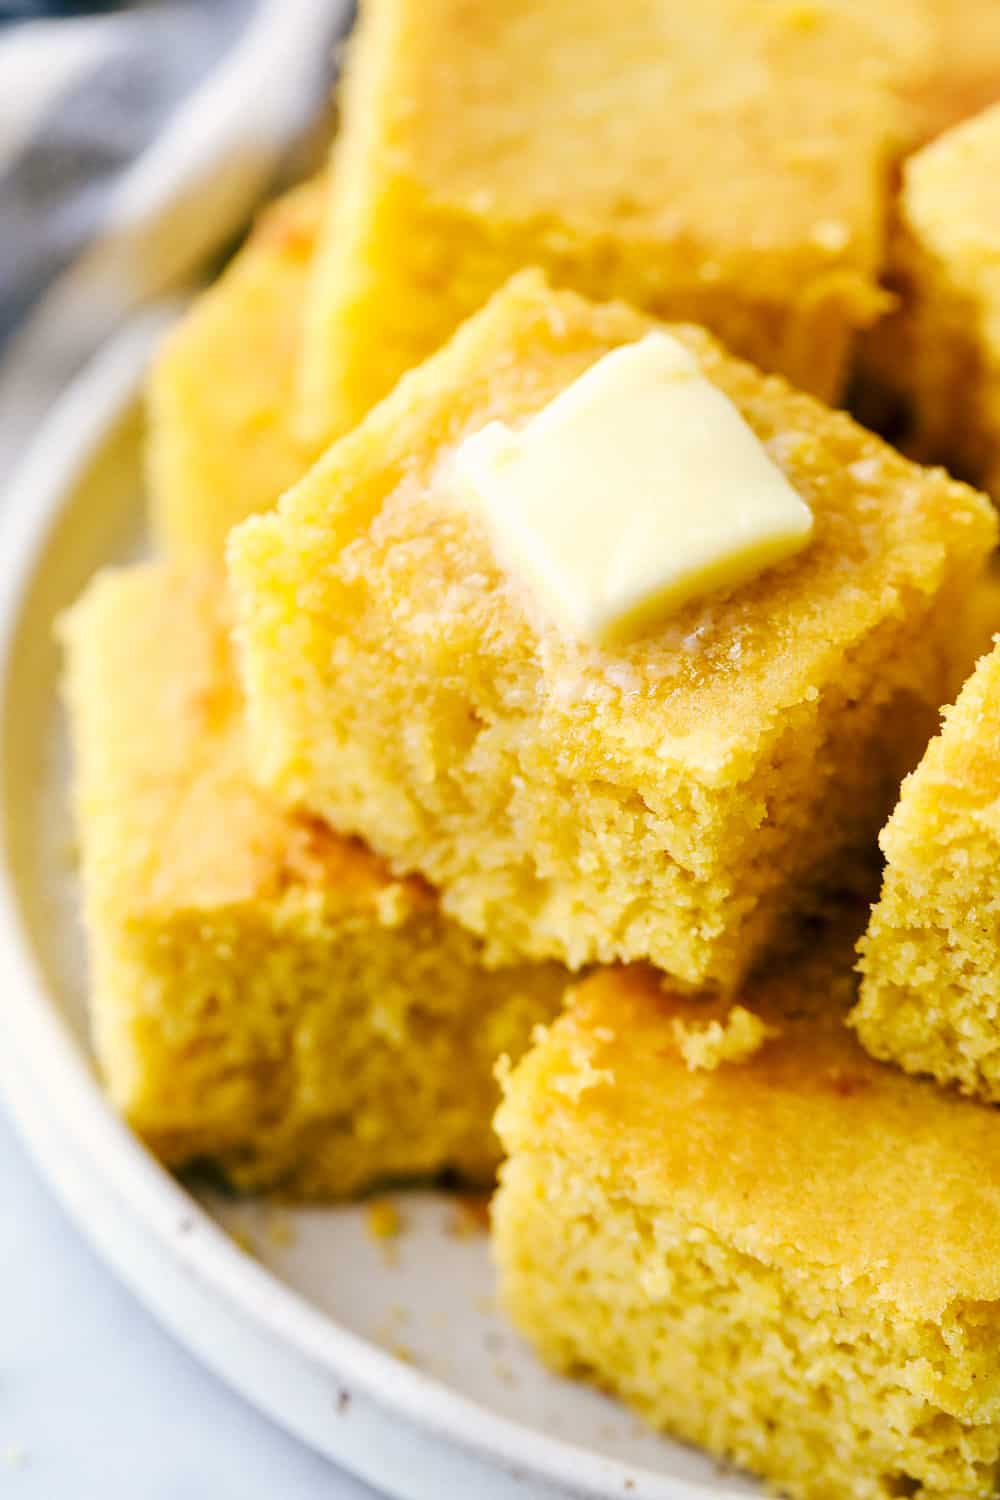 Cornbread cut into squares and stacked with a slice of butter on top.